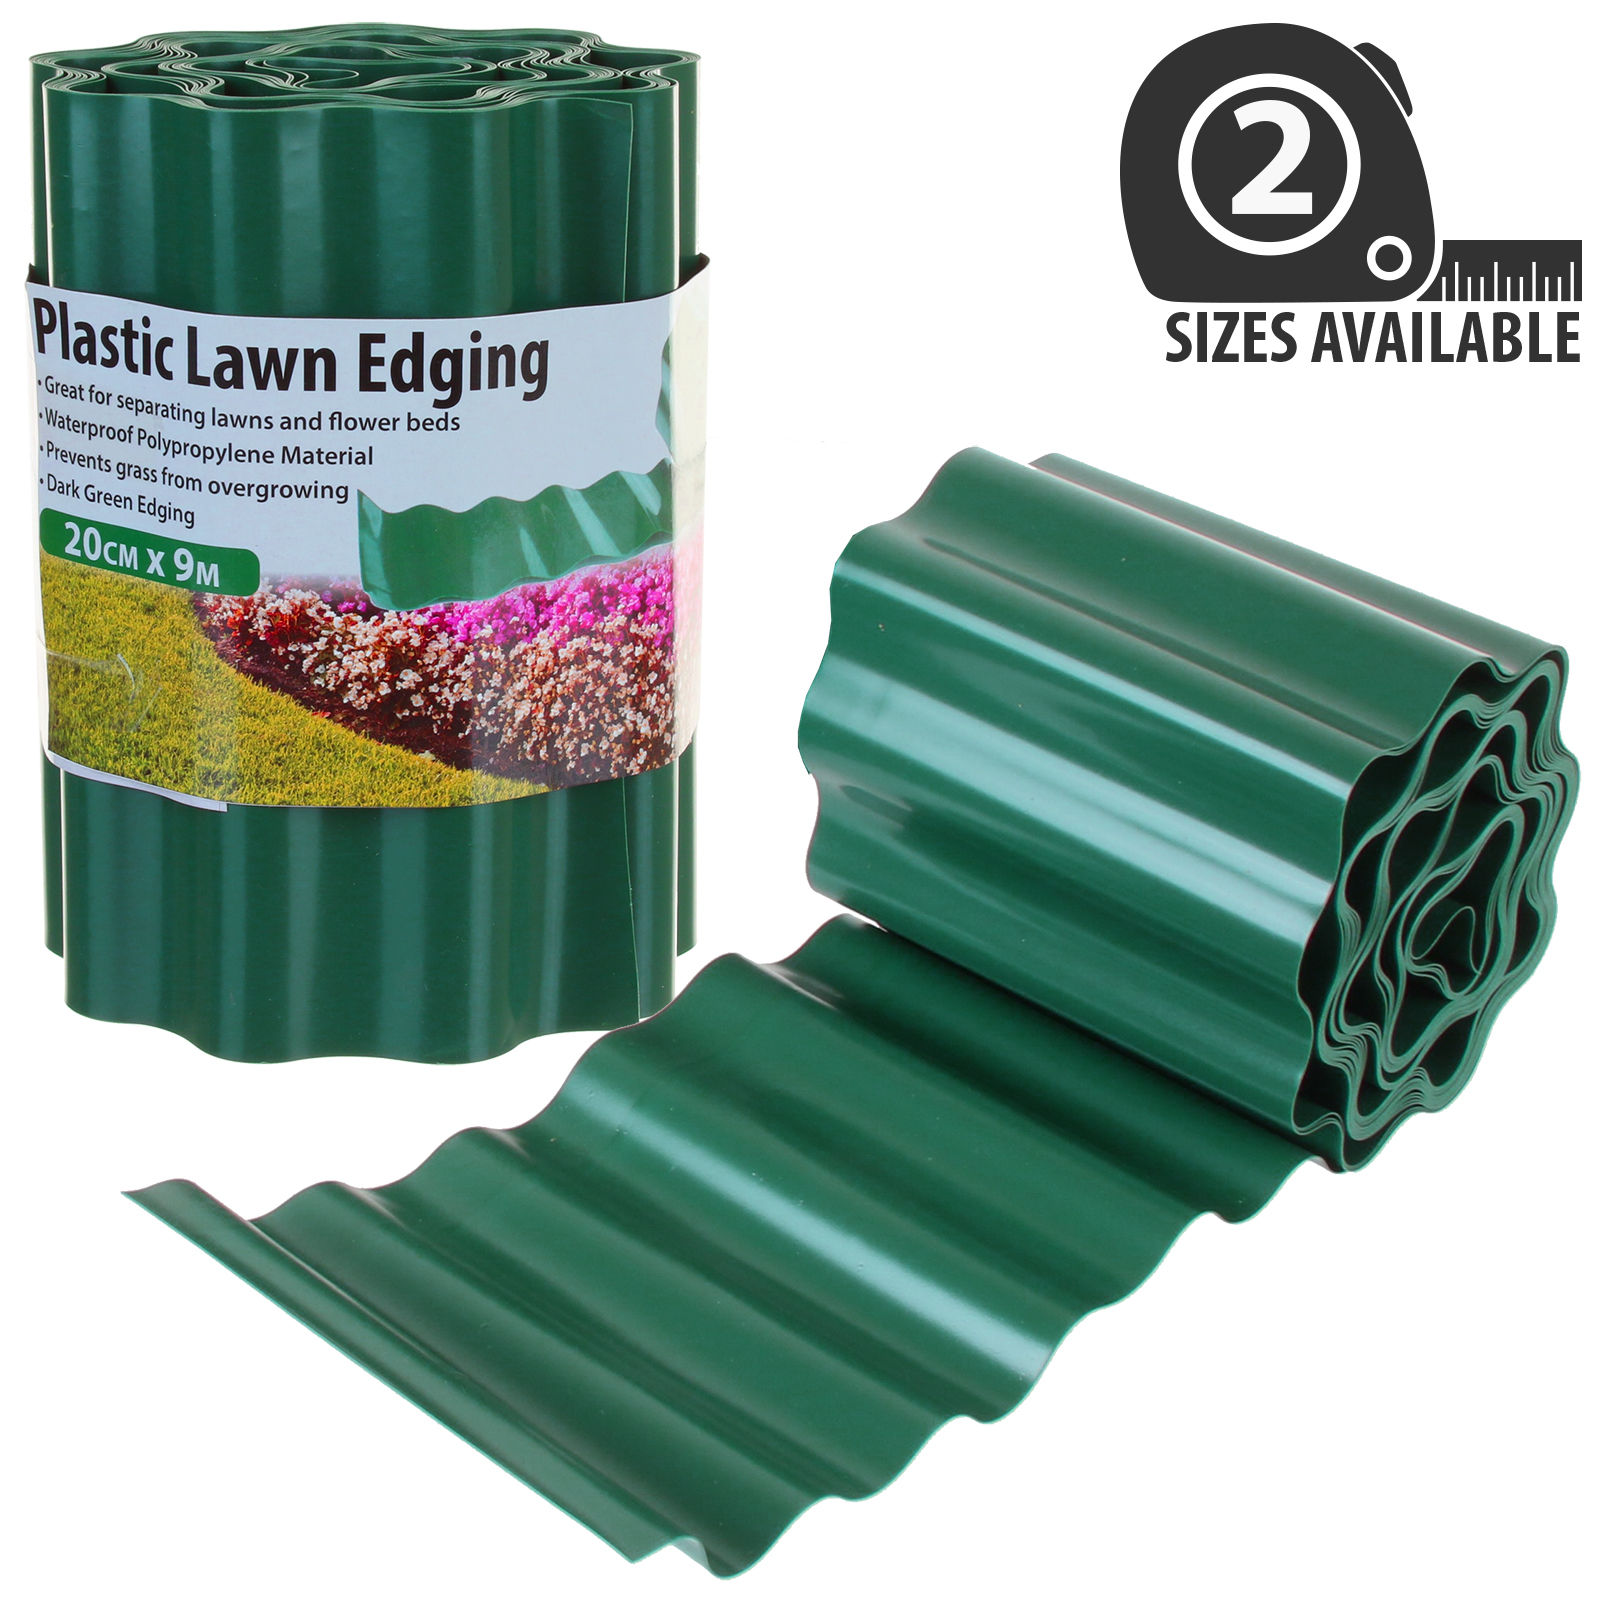 GARDEN PLASTIC GREEN LAWN EDGE EDGING BORDER FENCE GRASS FLEXIBLE PVC WALL PATH